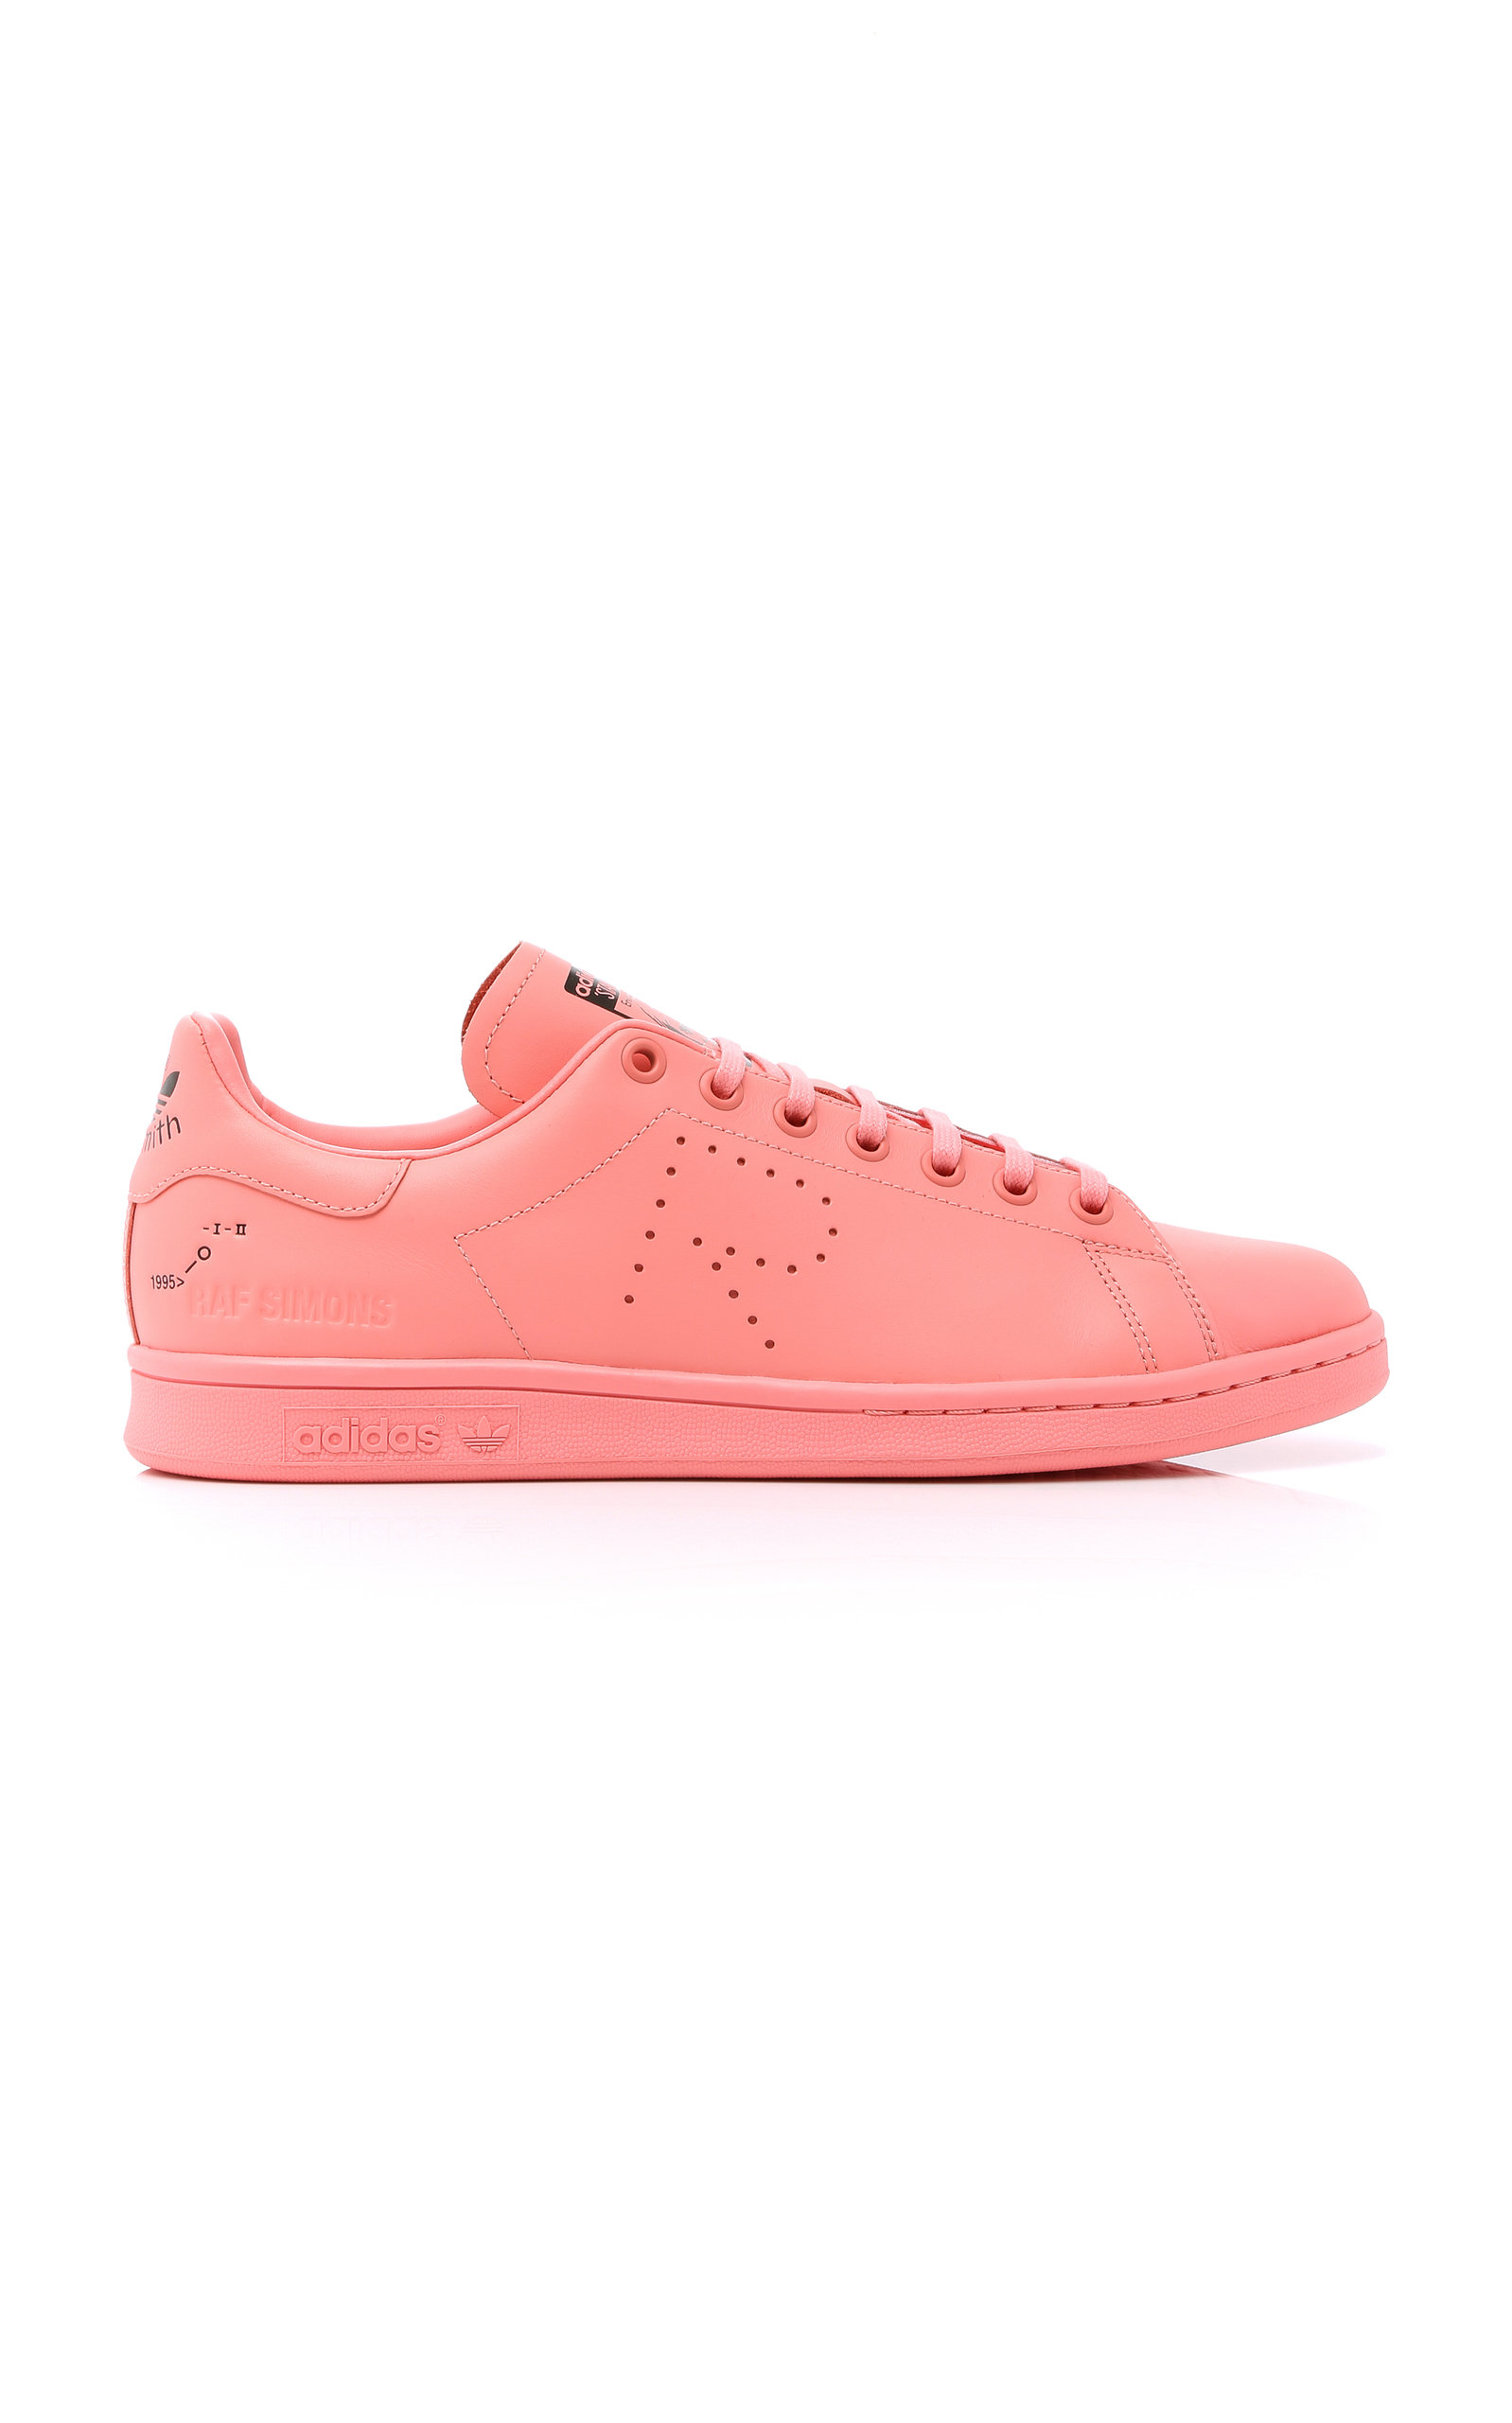 ADIDAS BY RAF SIMONS Unisex Stan Smith Leather Sneakers in Tacros/Blipnk/Ftwwht